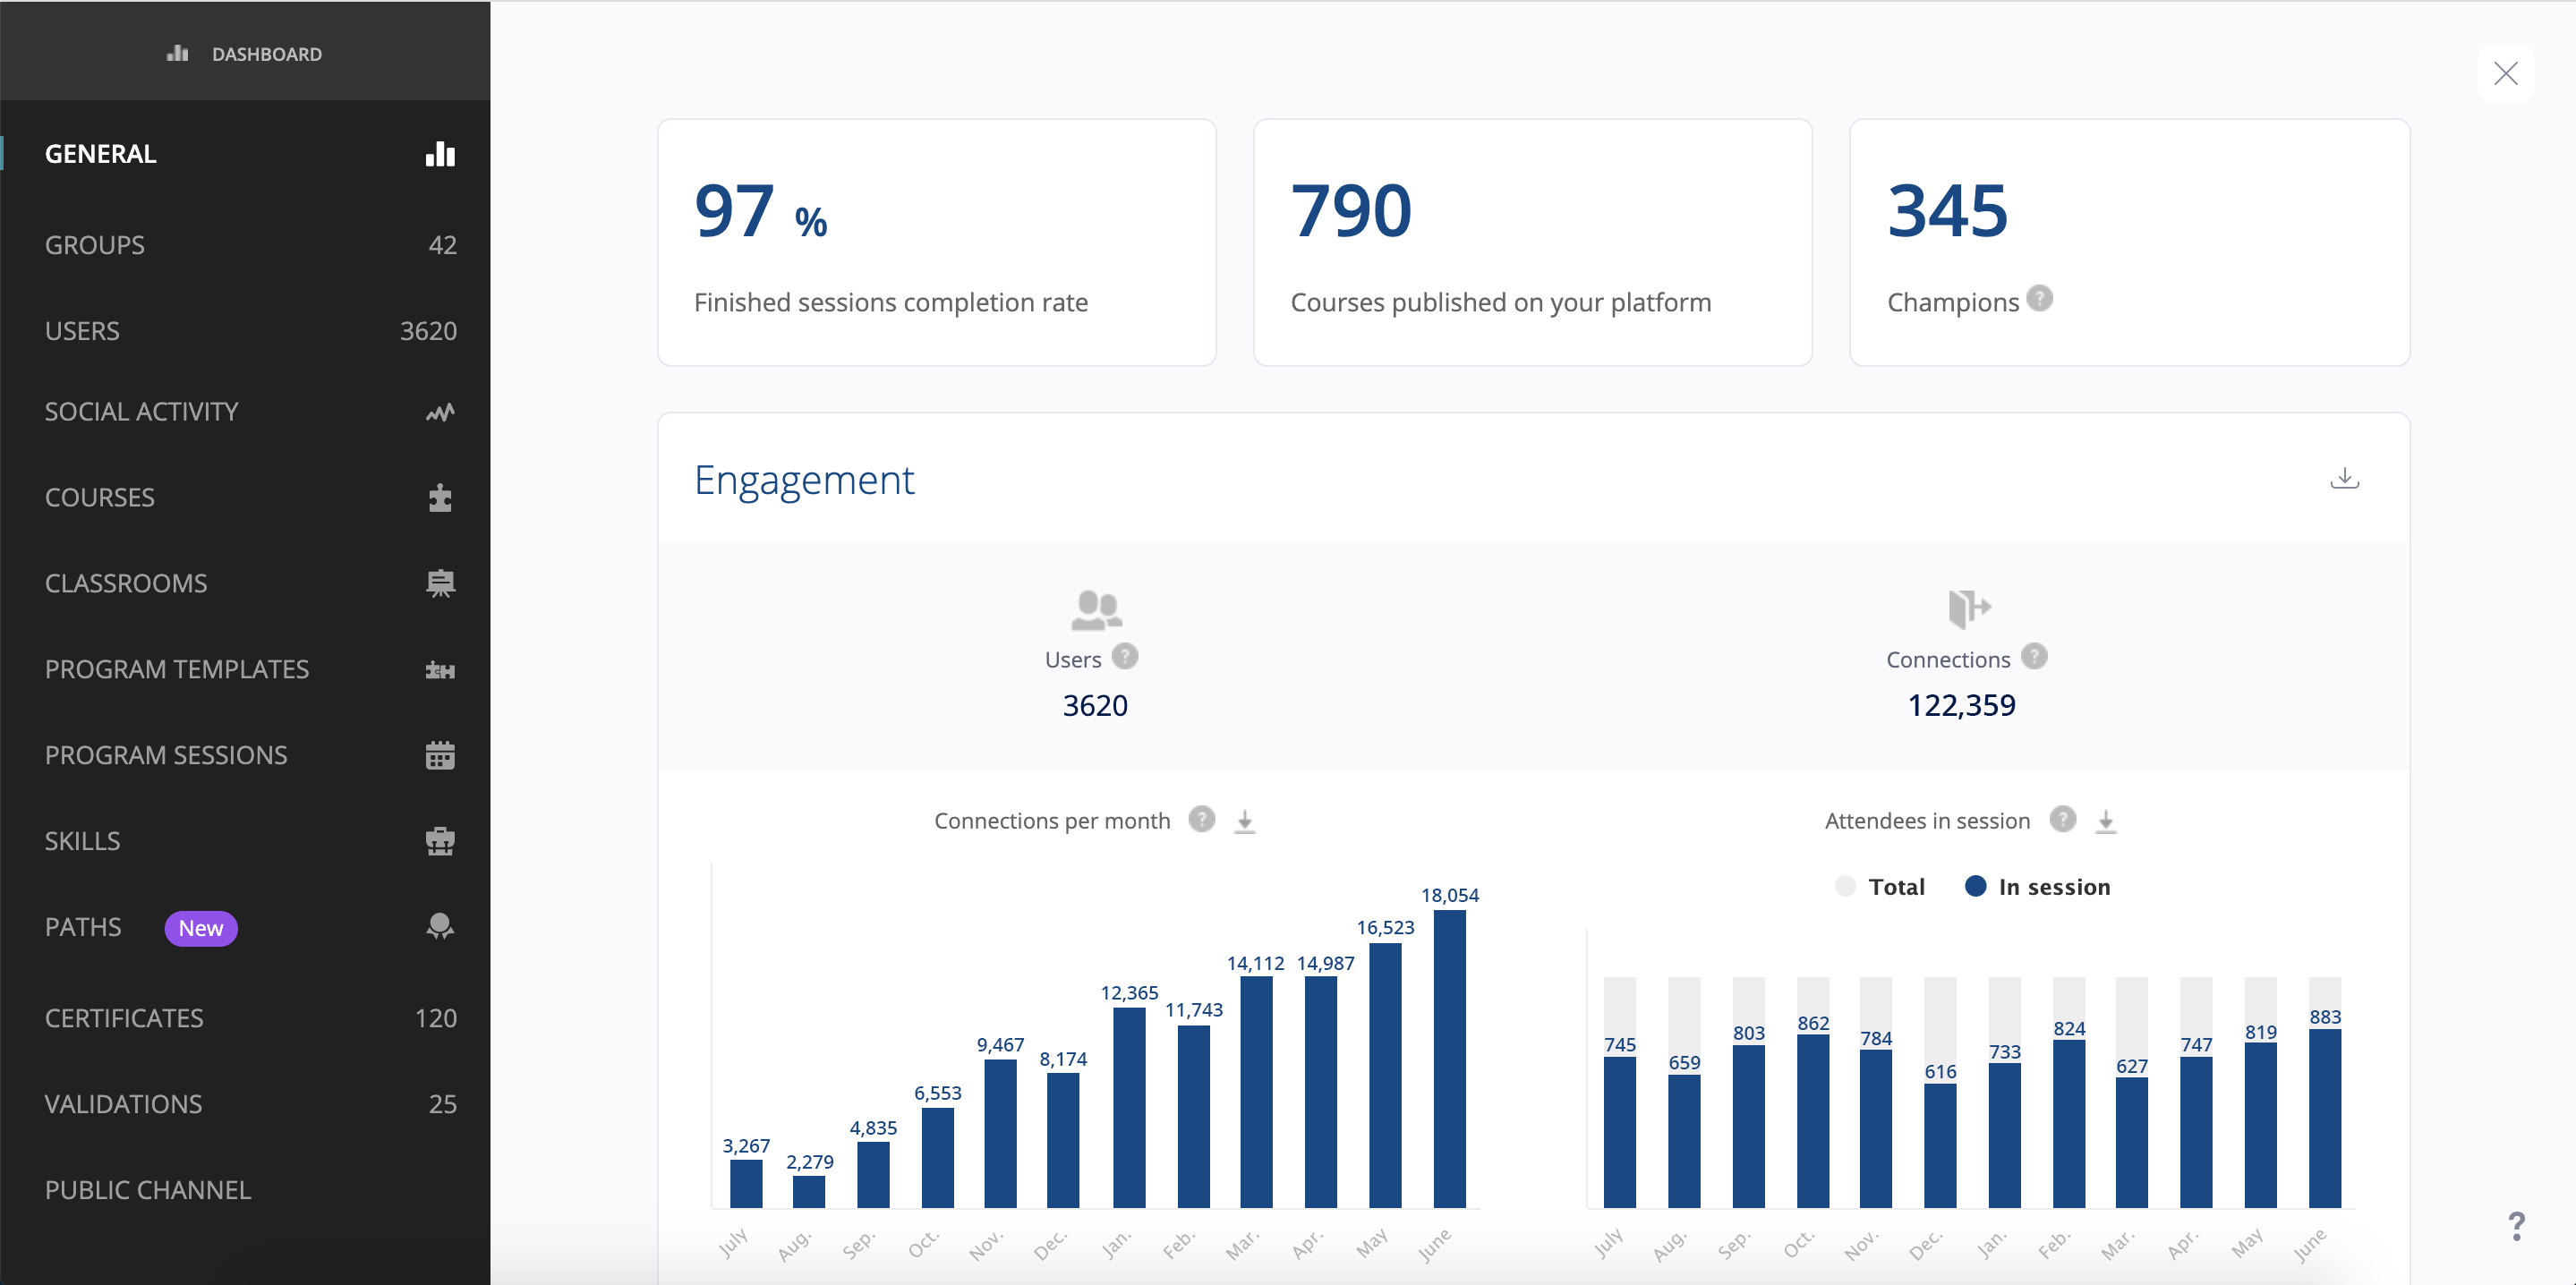 Make data-driven decisions with extensive reporting across groups, users, courses, paths, and more.